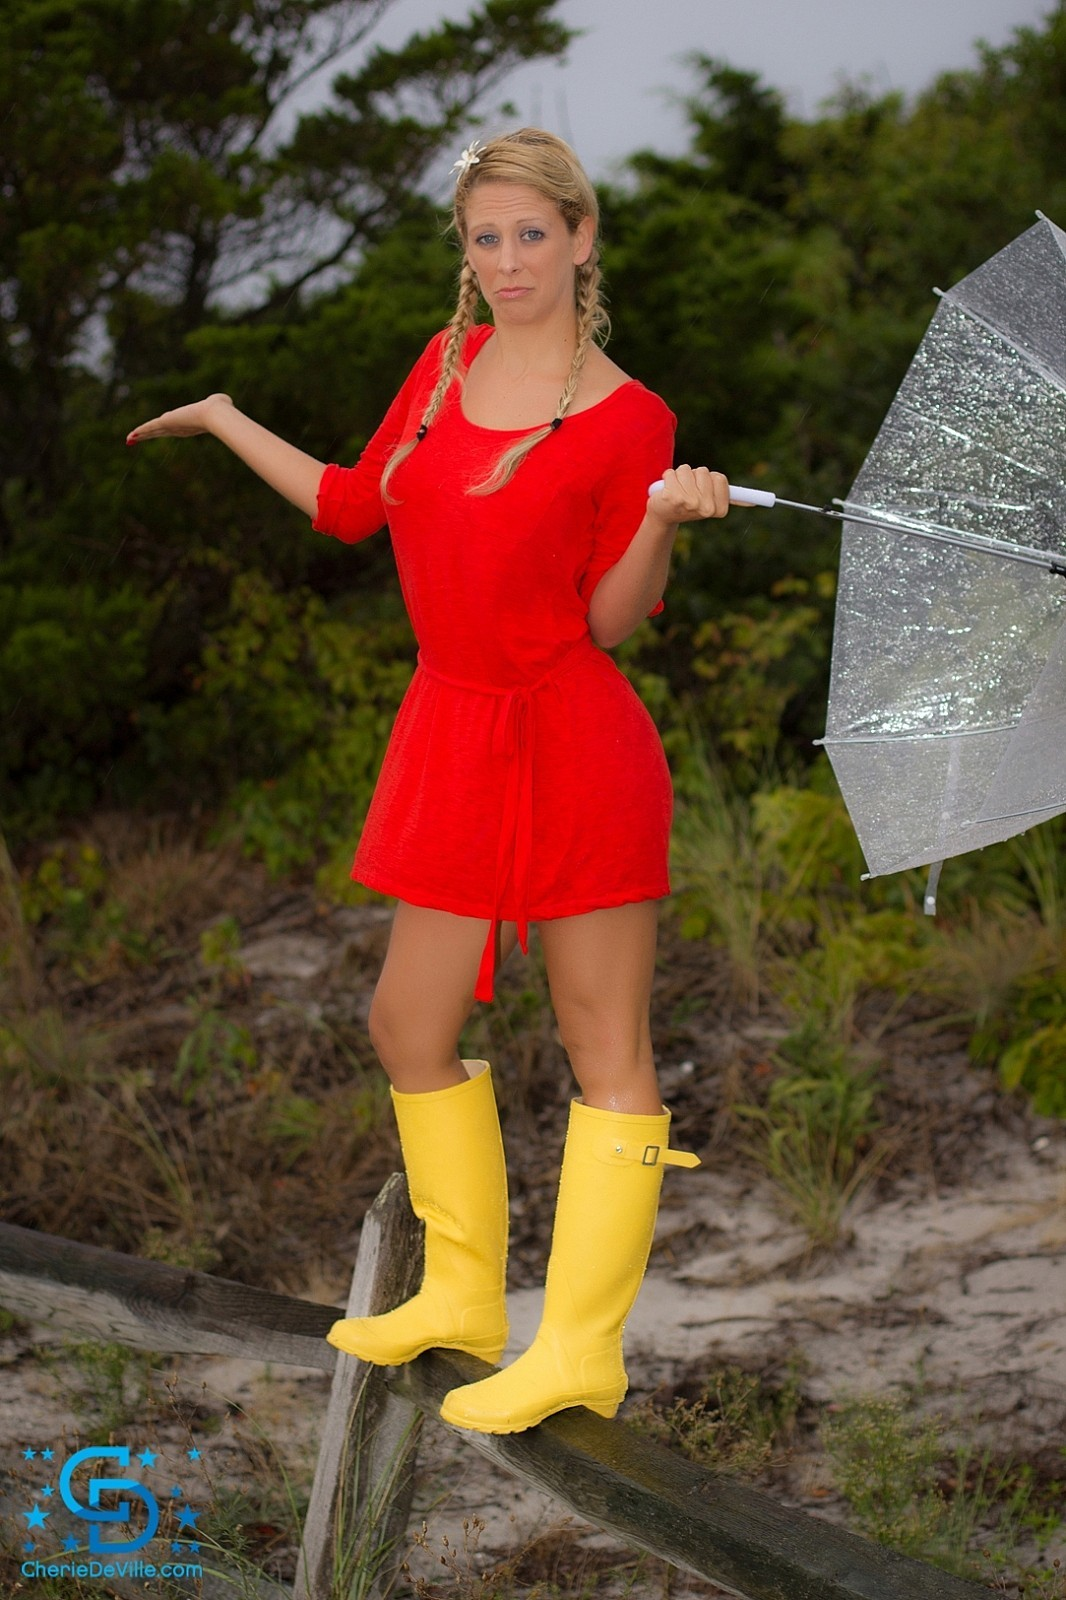 Cherie Deville Big Boobs Red Minidress and Umbrella